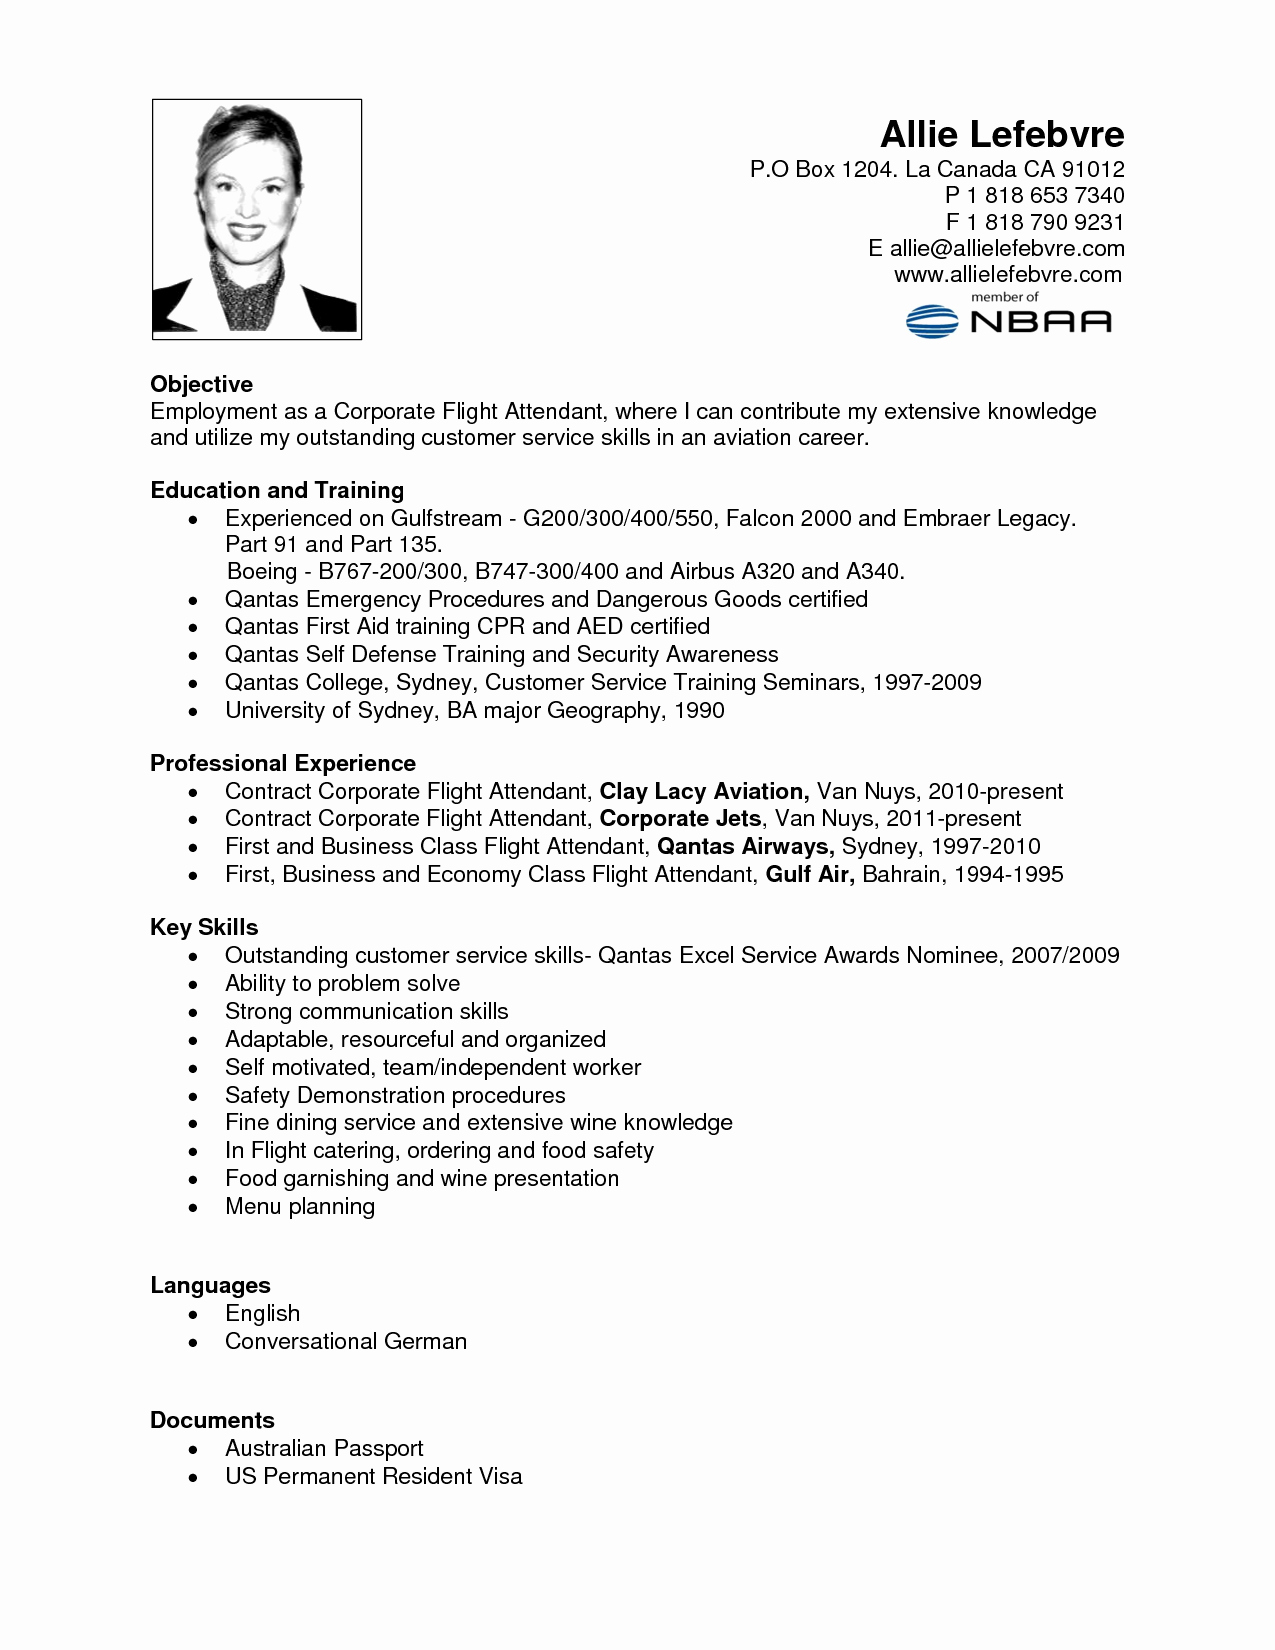 Resume Flight attendant without Experience Resume Ideas